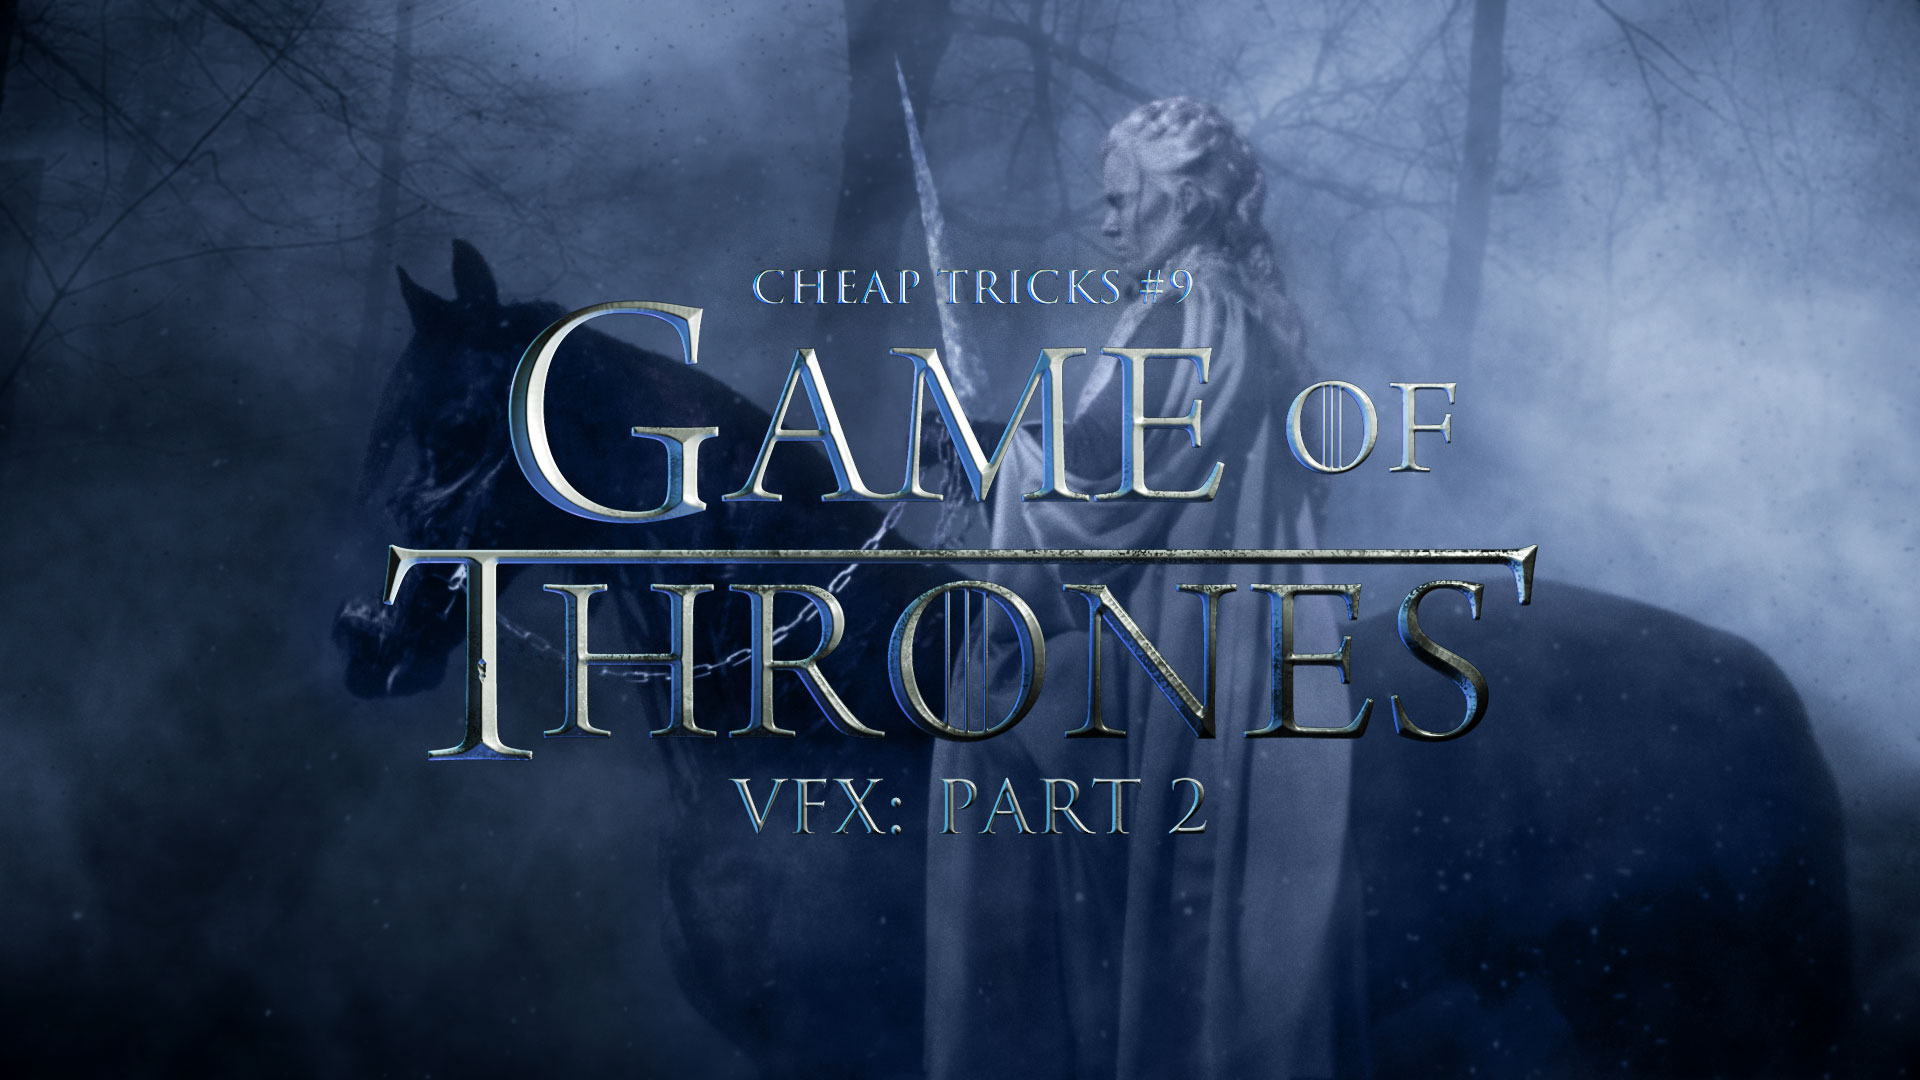 Cheap Tricks #9 | Game of Thrones VFX - Part 2